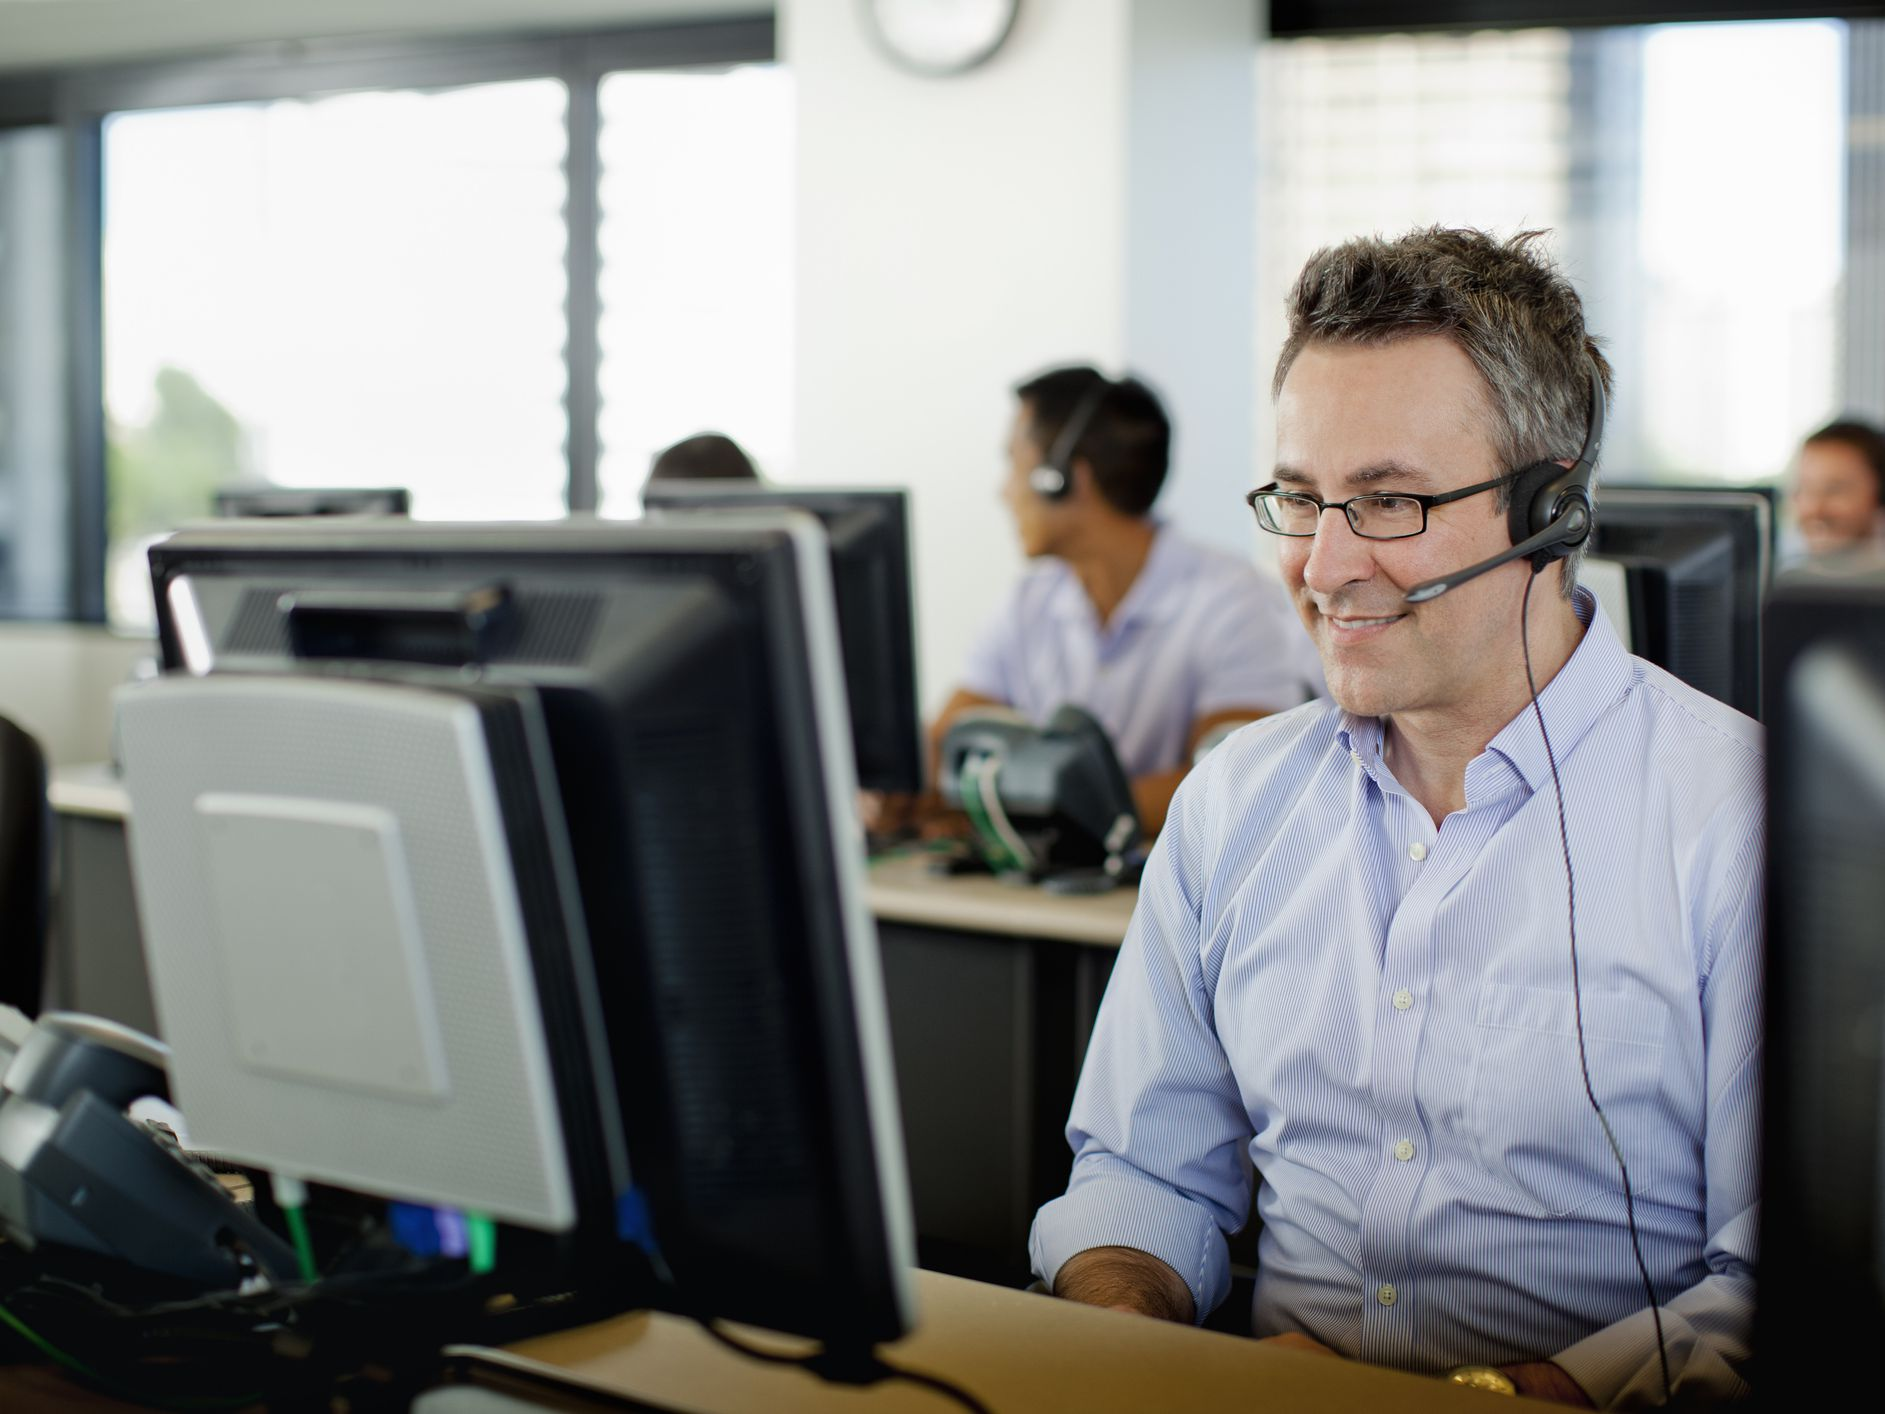 Computer User Support Specialists